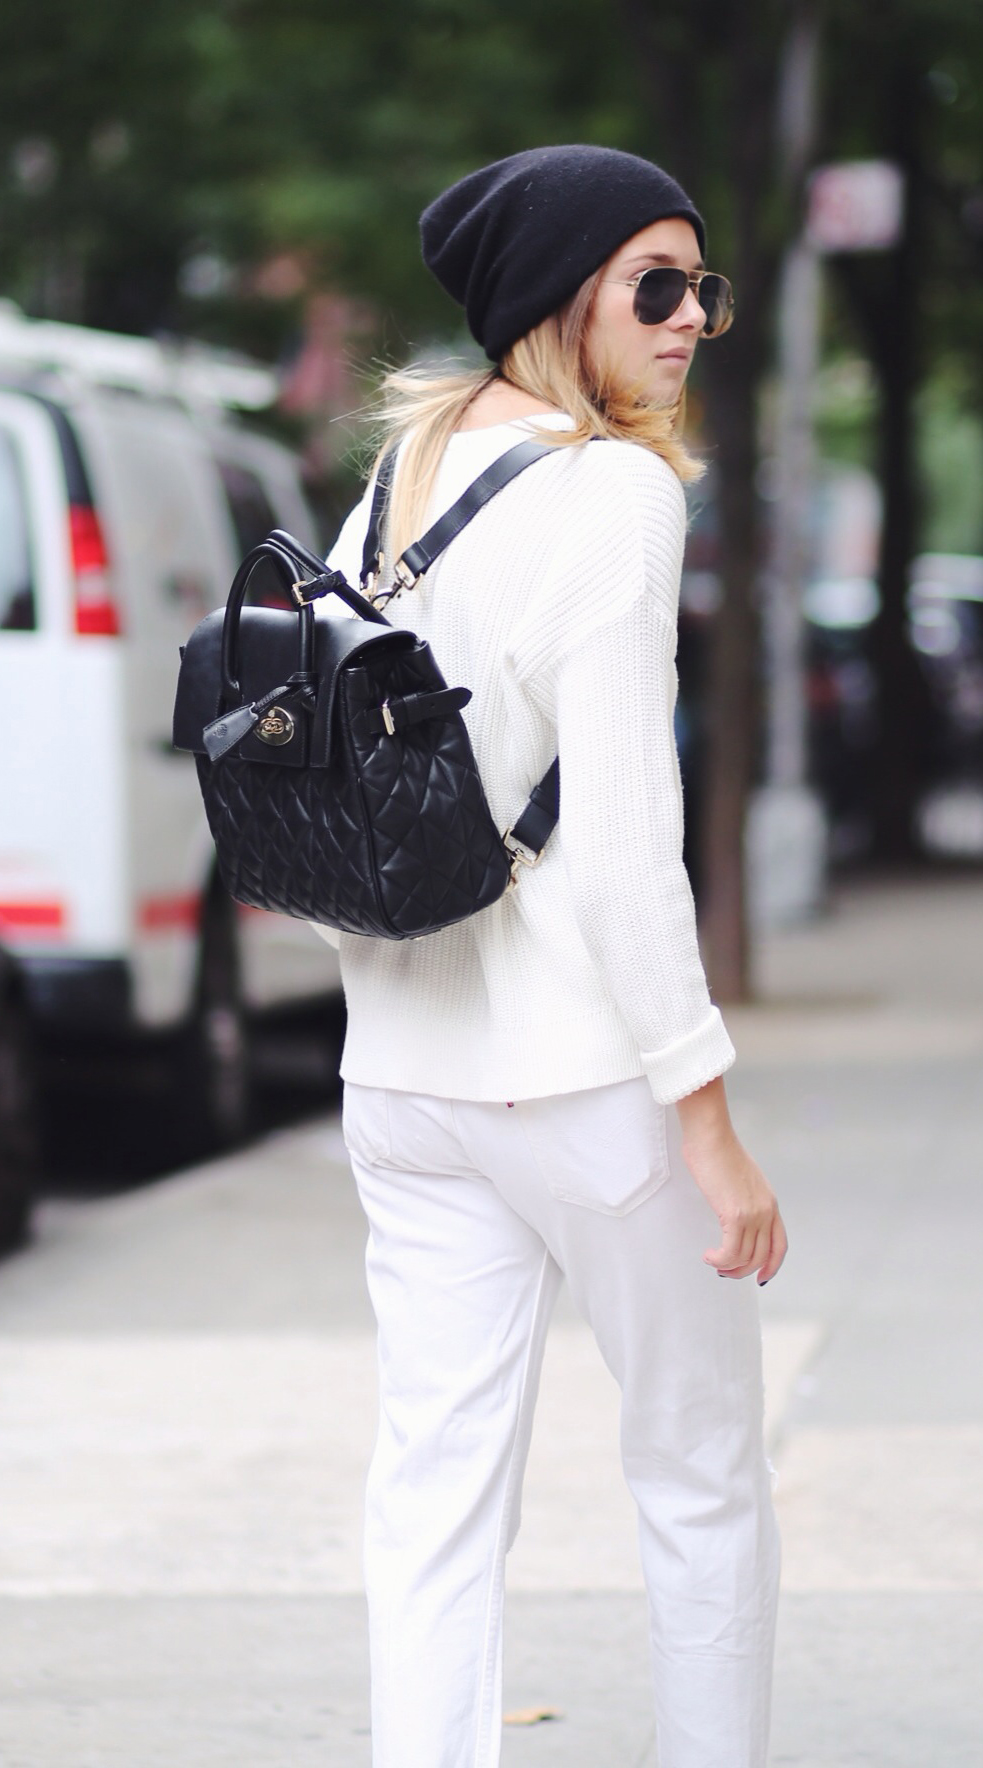 Danielle Bernstein is wearing all white and a black backpack from Mulberry